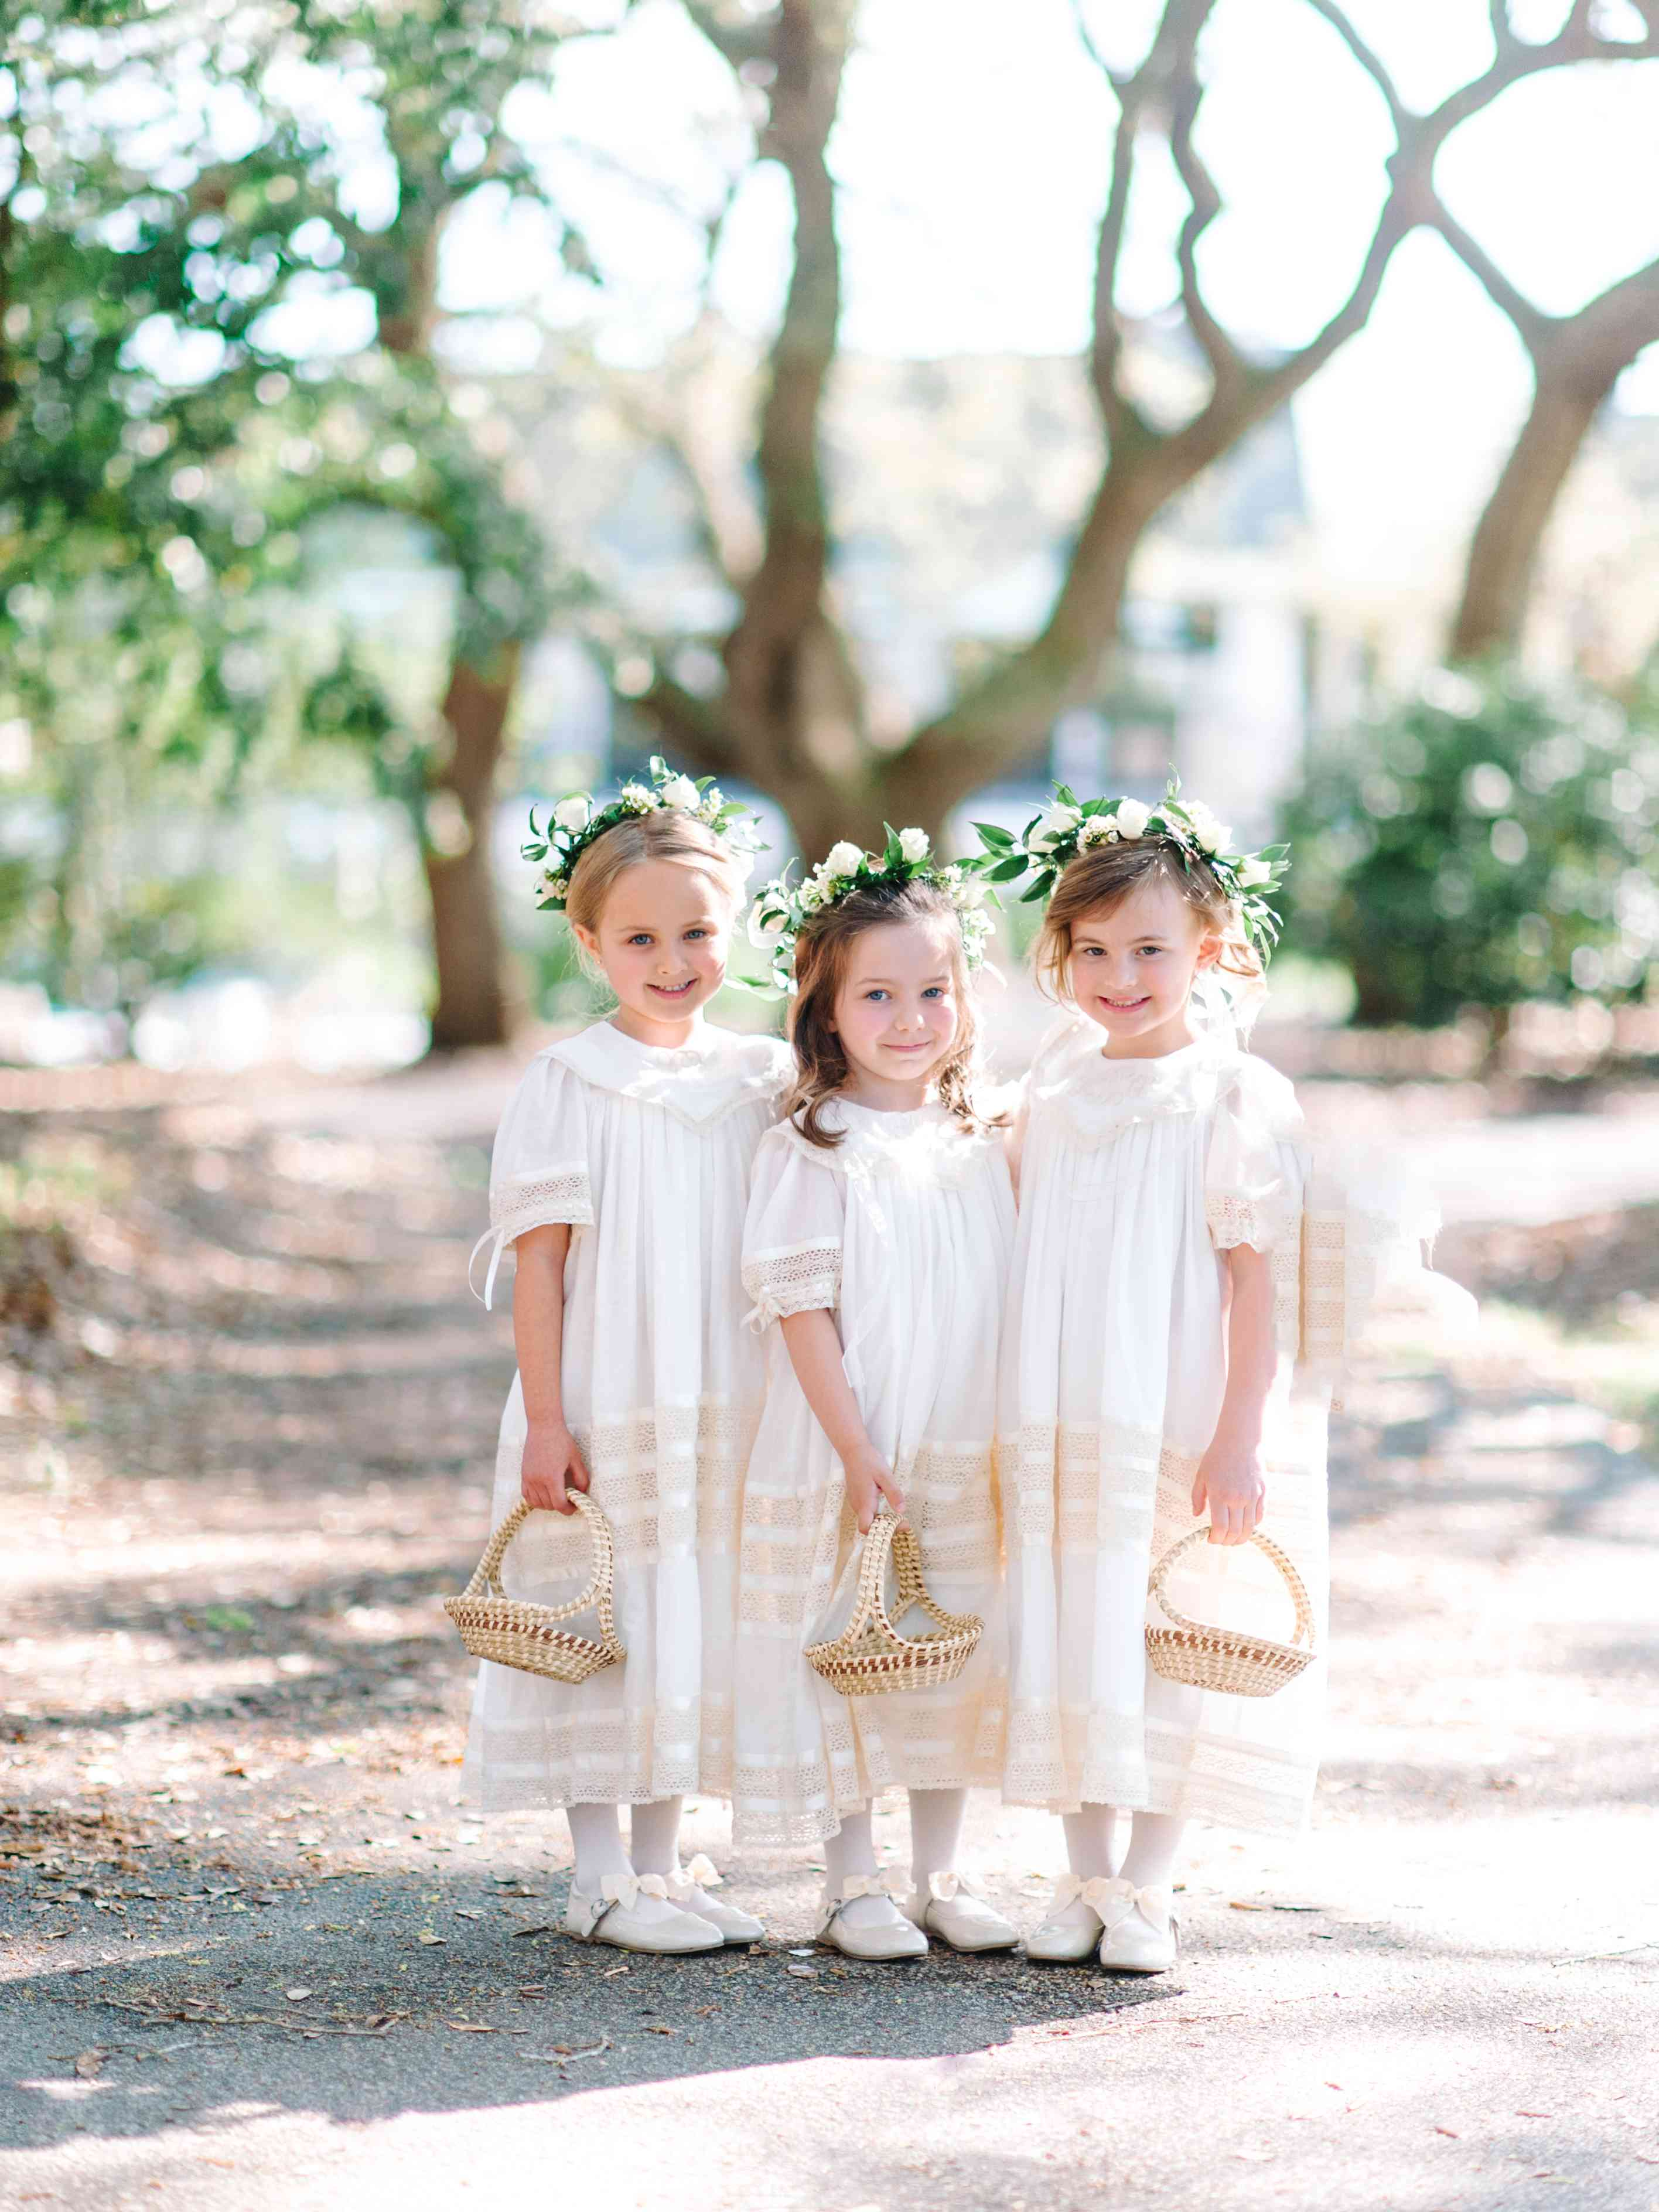 Three flower girls in white dresses and flower crowns holding wicker baskets